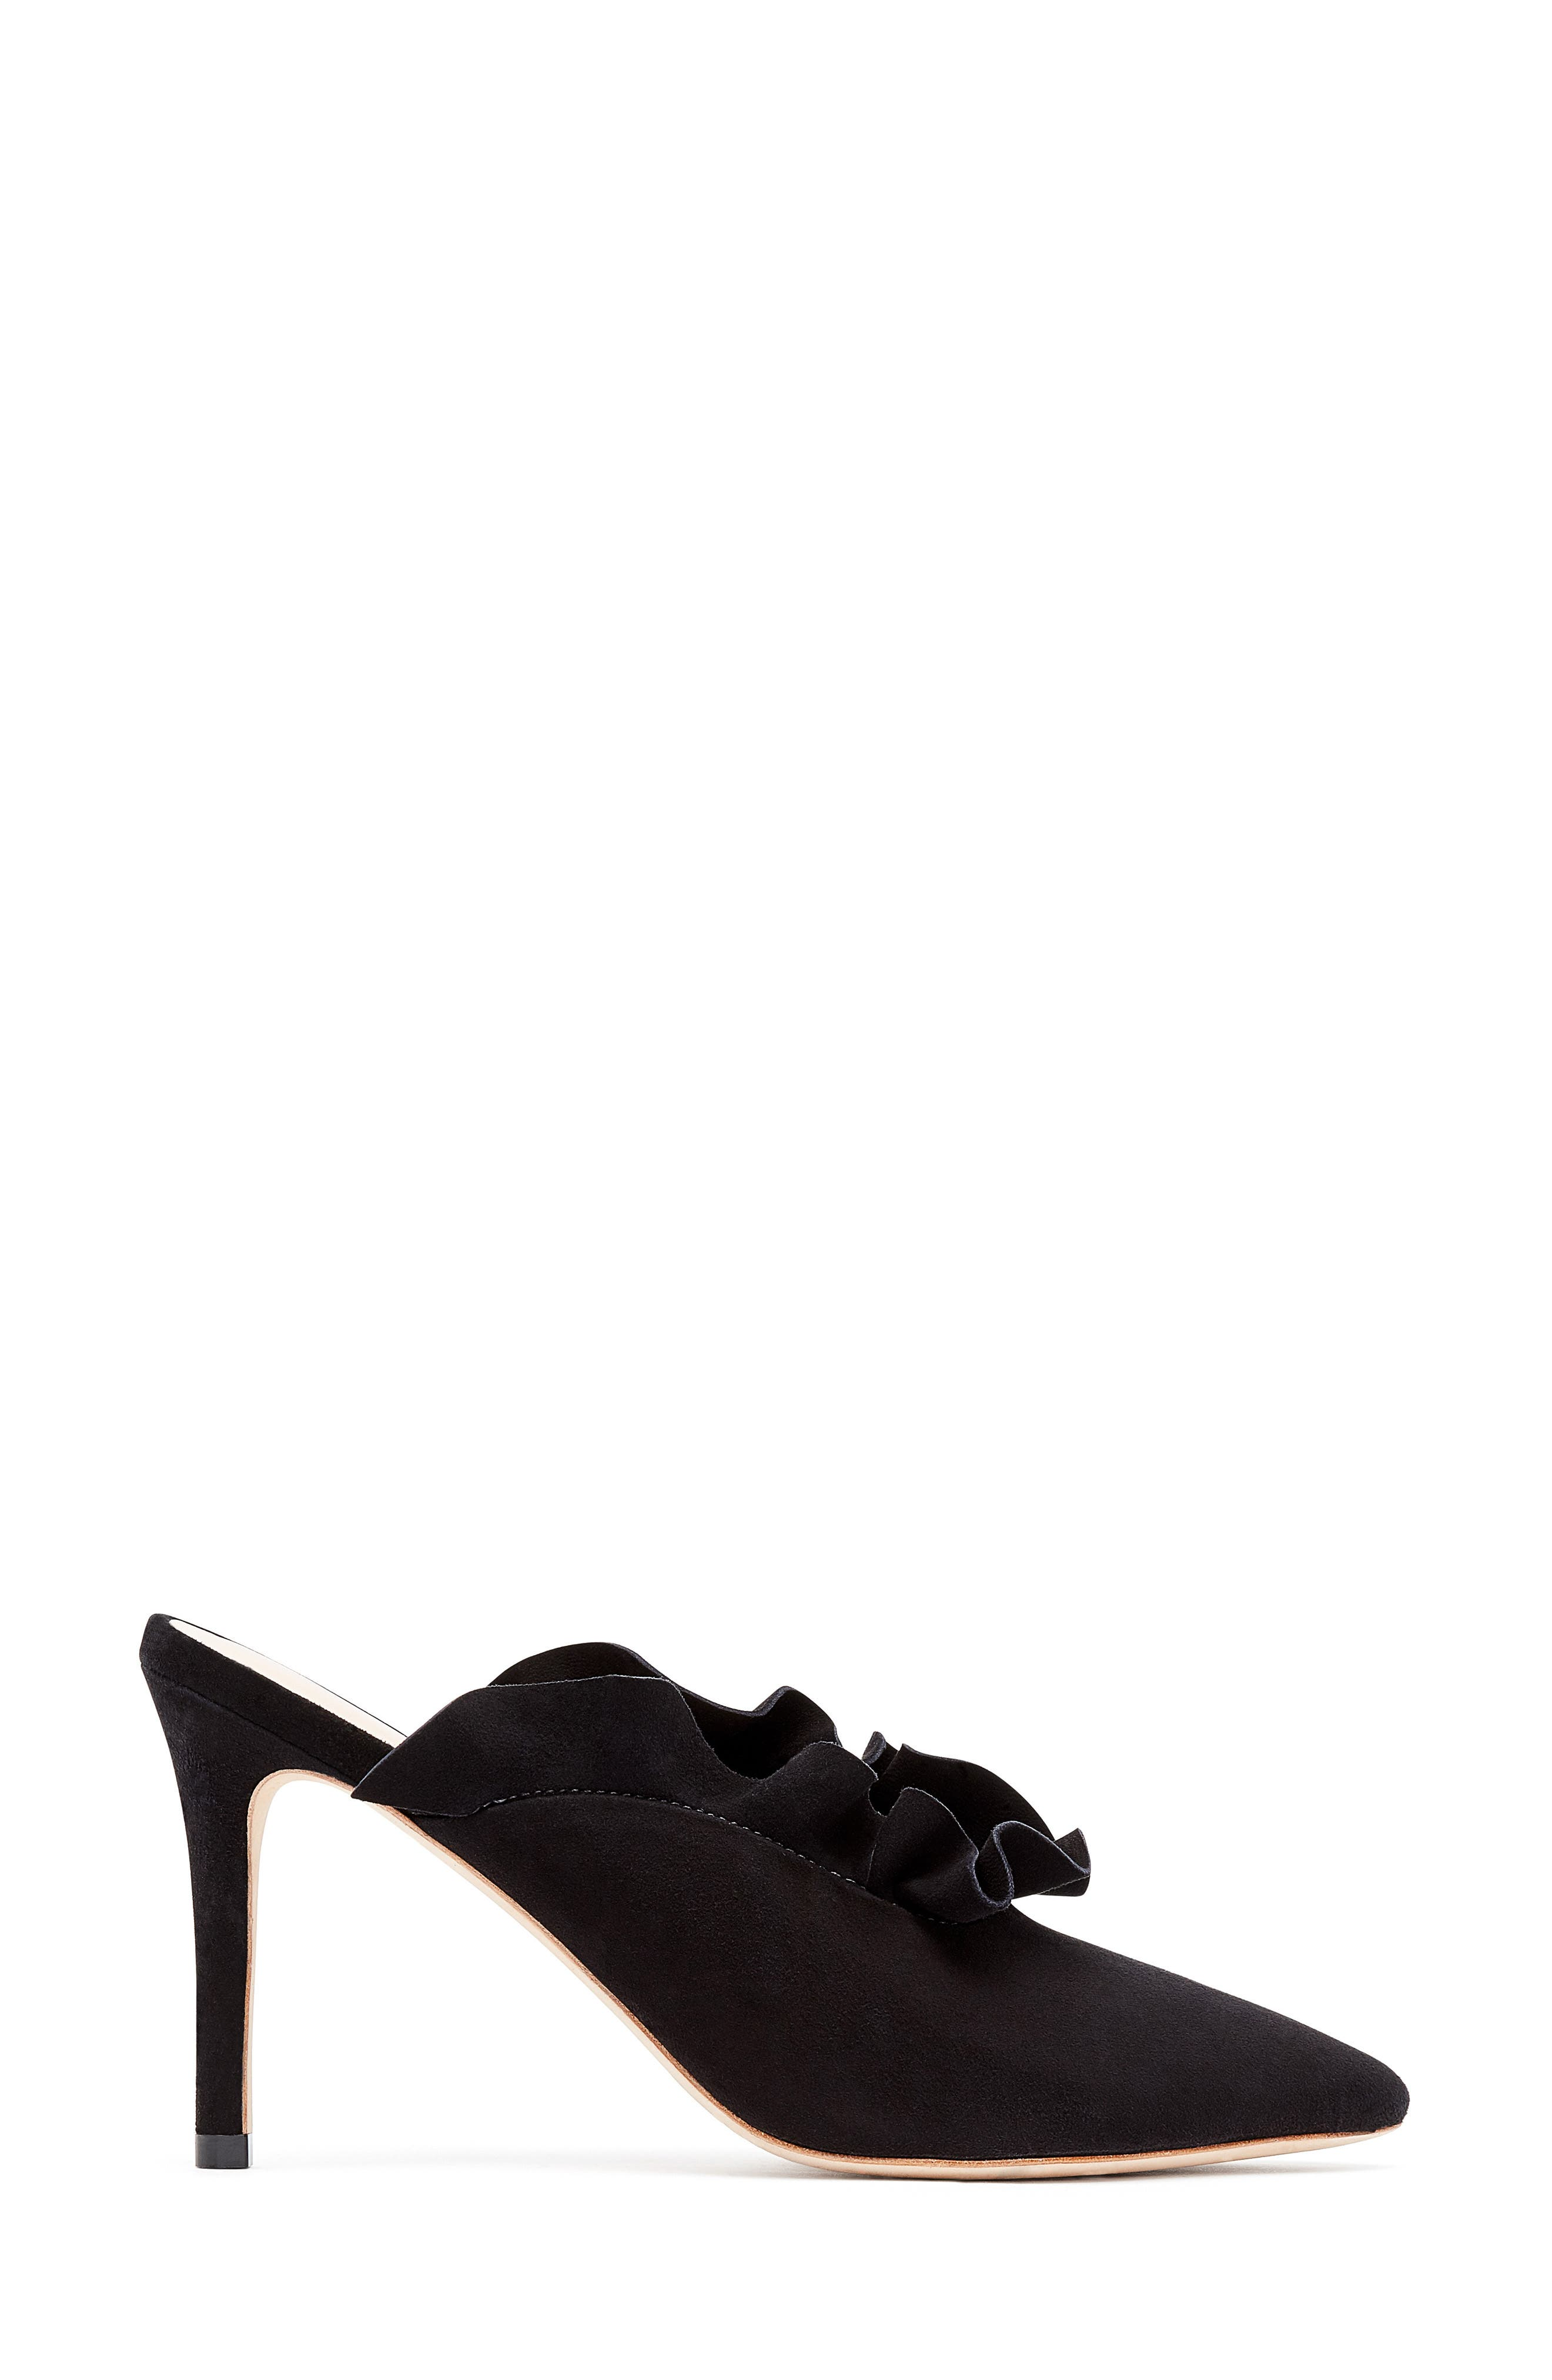 Langley Ruffle Pointy Toe Mule,                             Alternate thumbnail 2, color,                             001